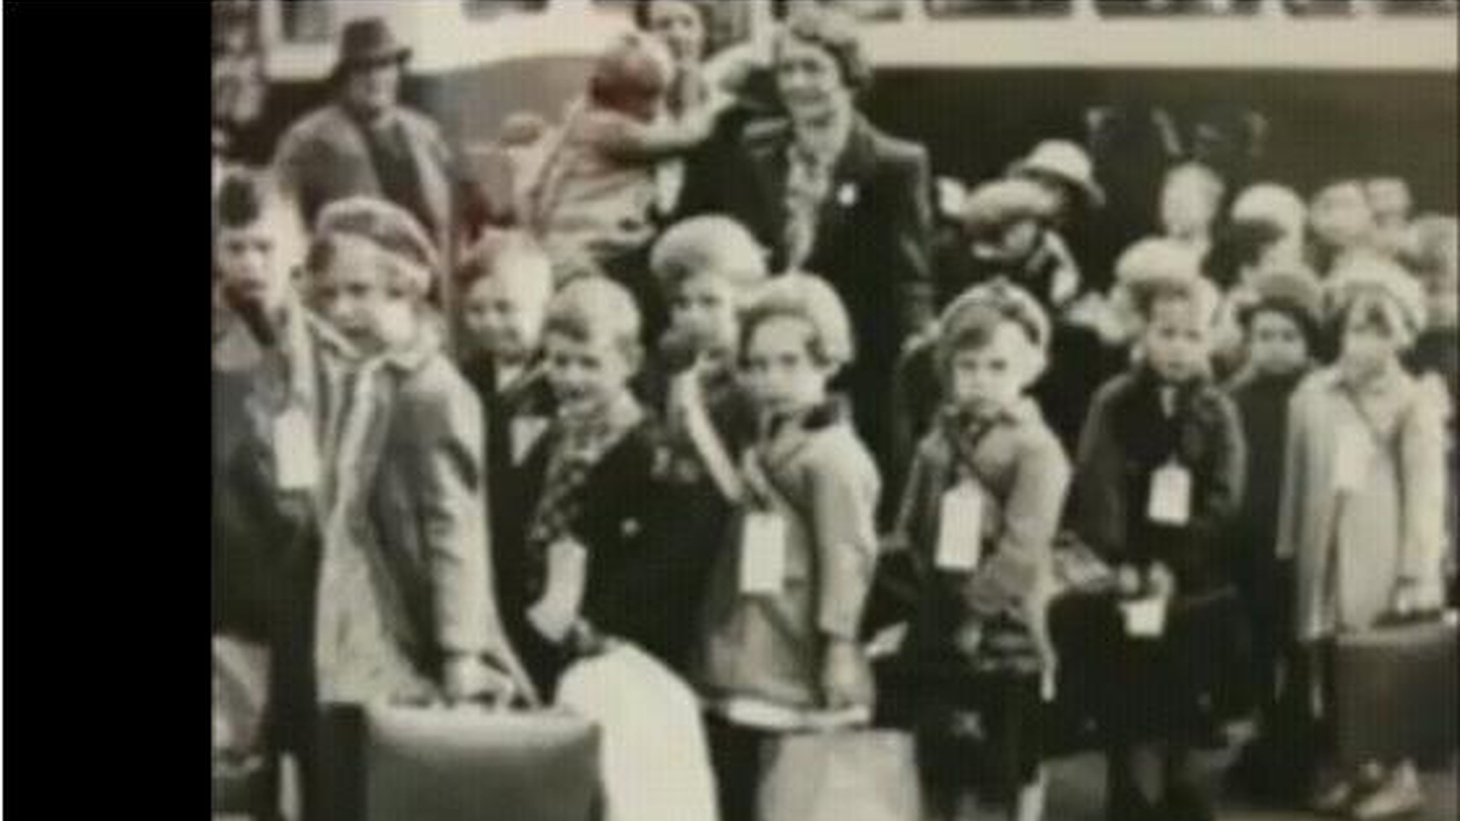 """In September, 1939, as war with Germany was about to be declared, the children of major British cities were """"evacuated."""" Their parents had no idea where they were going or if they would ever see them again. Seventy years later, the memories of the remaining evacuees are still strong. KCRW reprises our 1989 documentary, narrated by evacuee Monica B. Morris, to commemorate the 70th anniversary of the evacuation. (Airs 2-3pm)"""